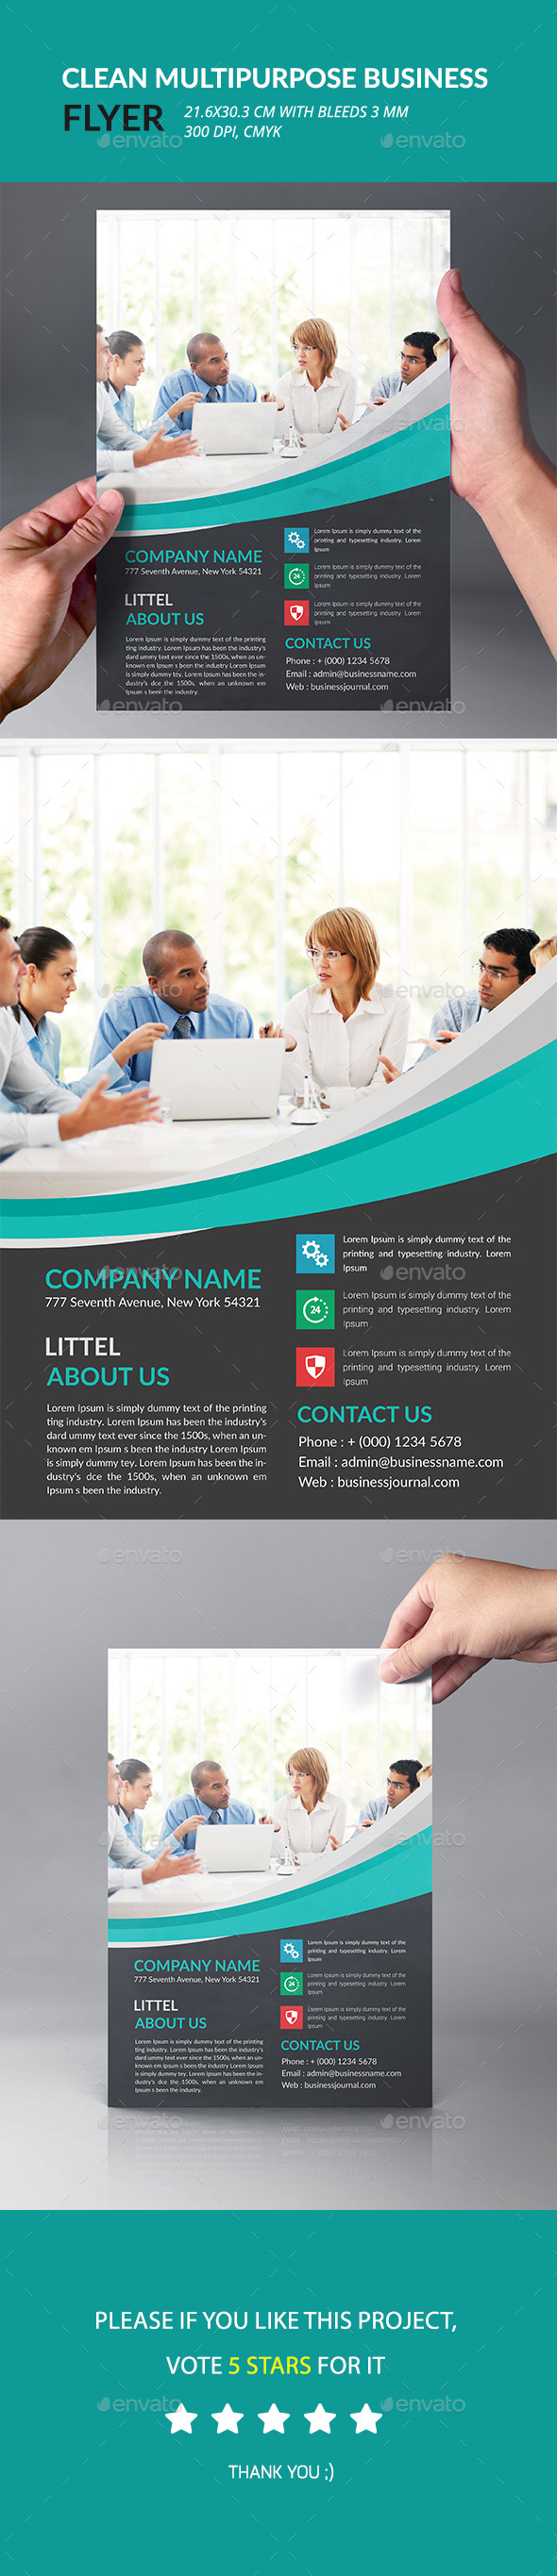 Clean Multipurpose Business Flyer - Corporate Flyers